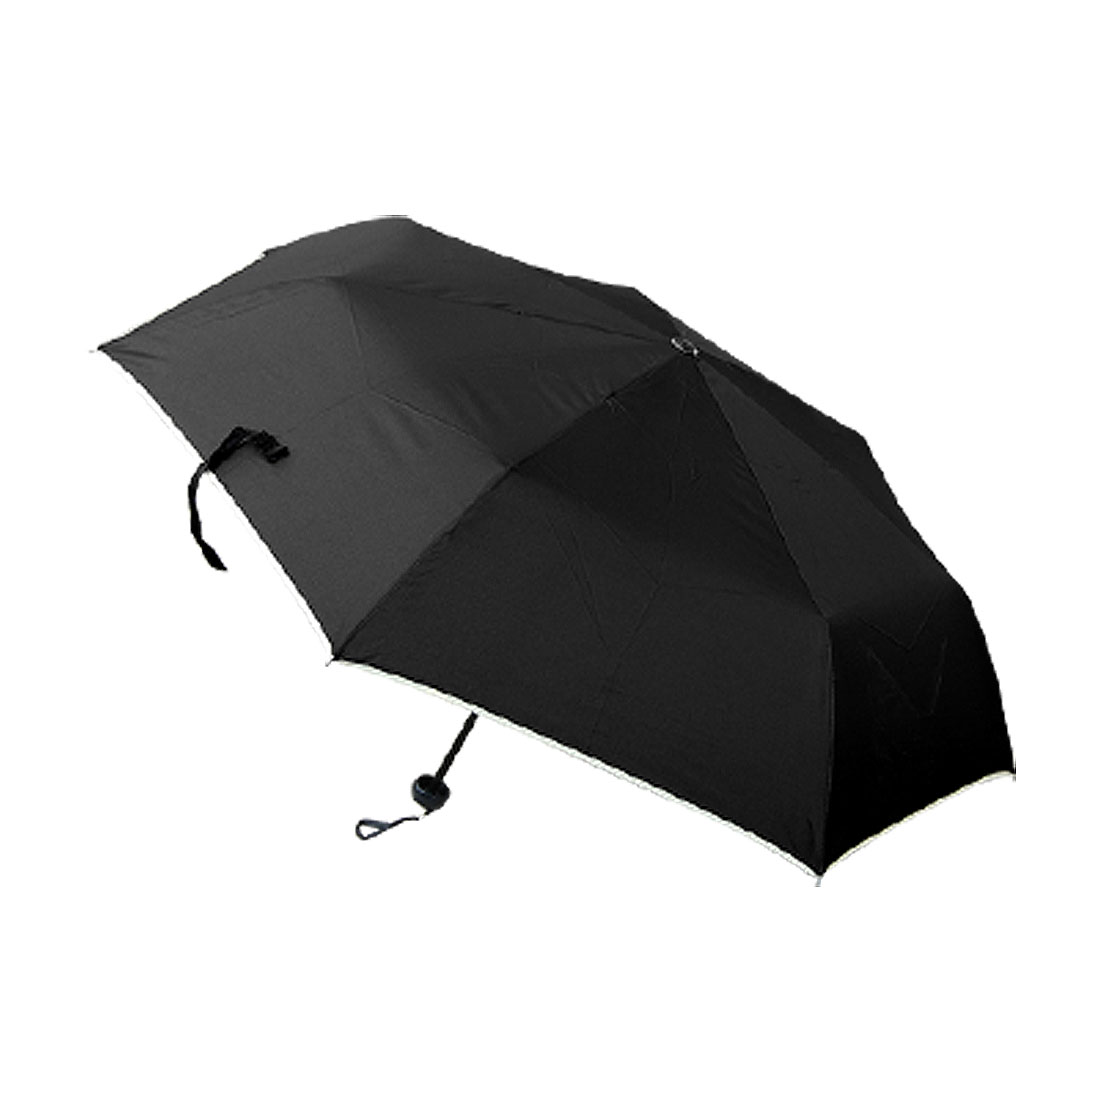 Cool Black Canopy Men's Folding Rain Brolly Umbrella